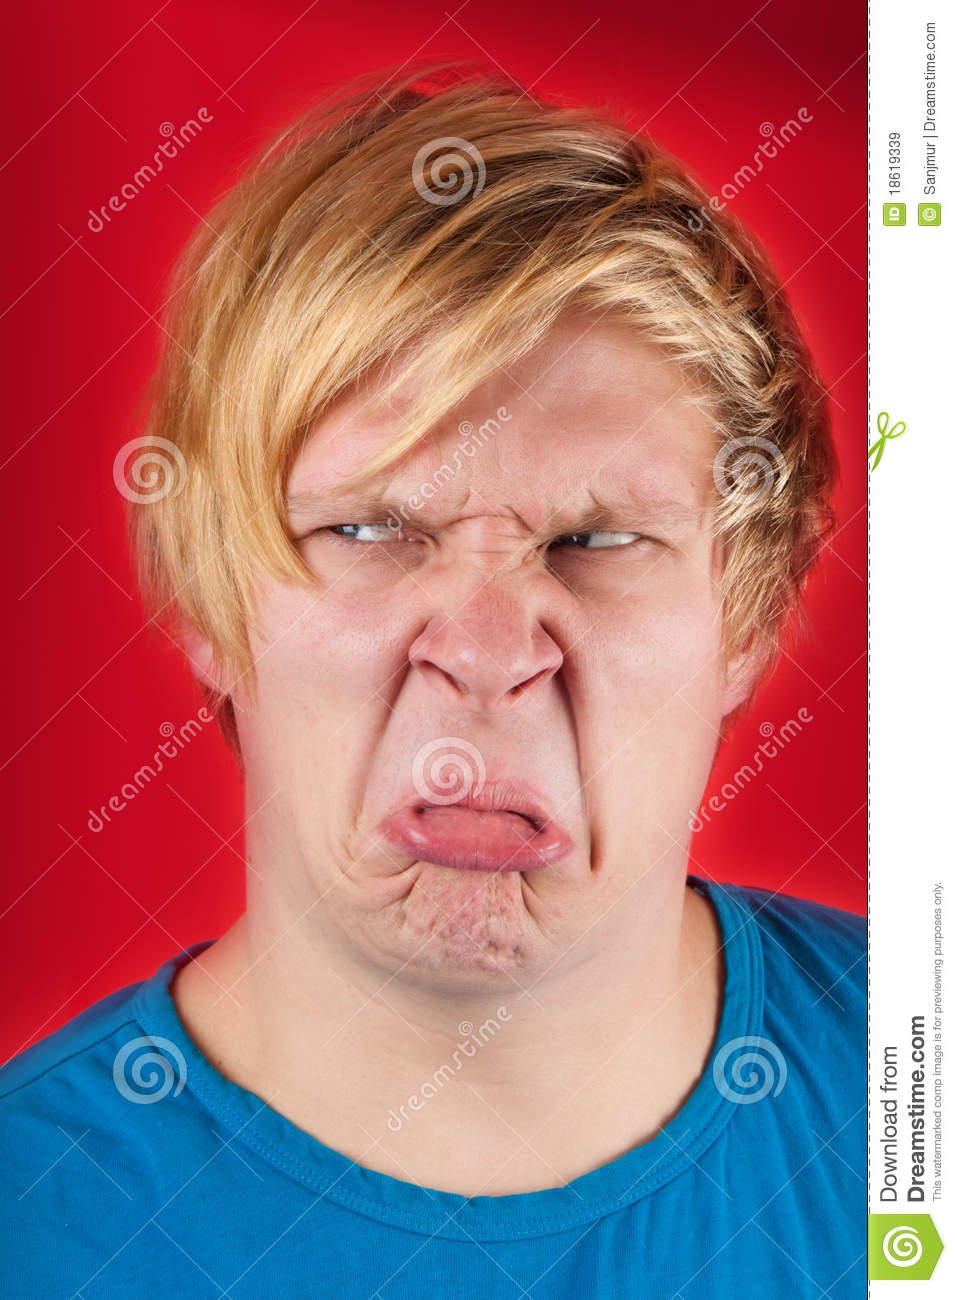 Disgusted Royalty Free Stock Images - Image: 18619339